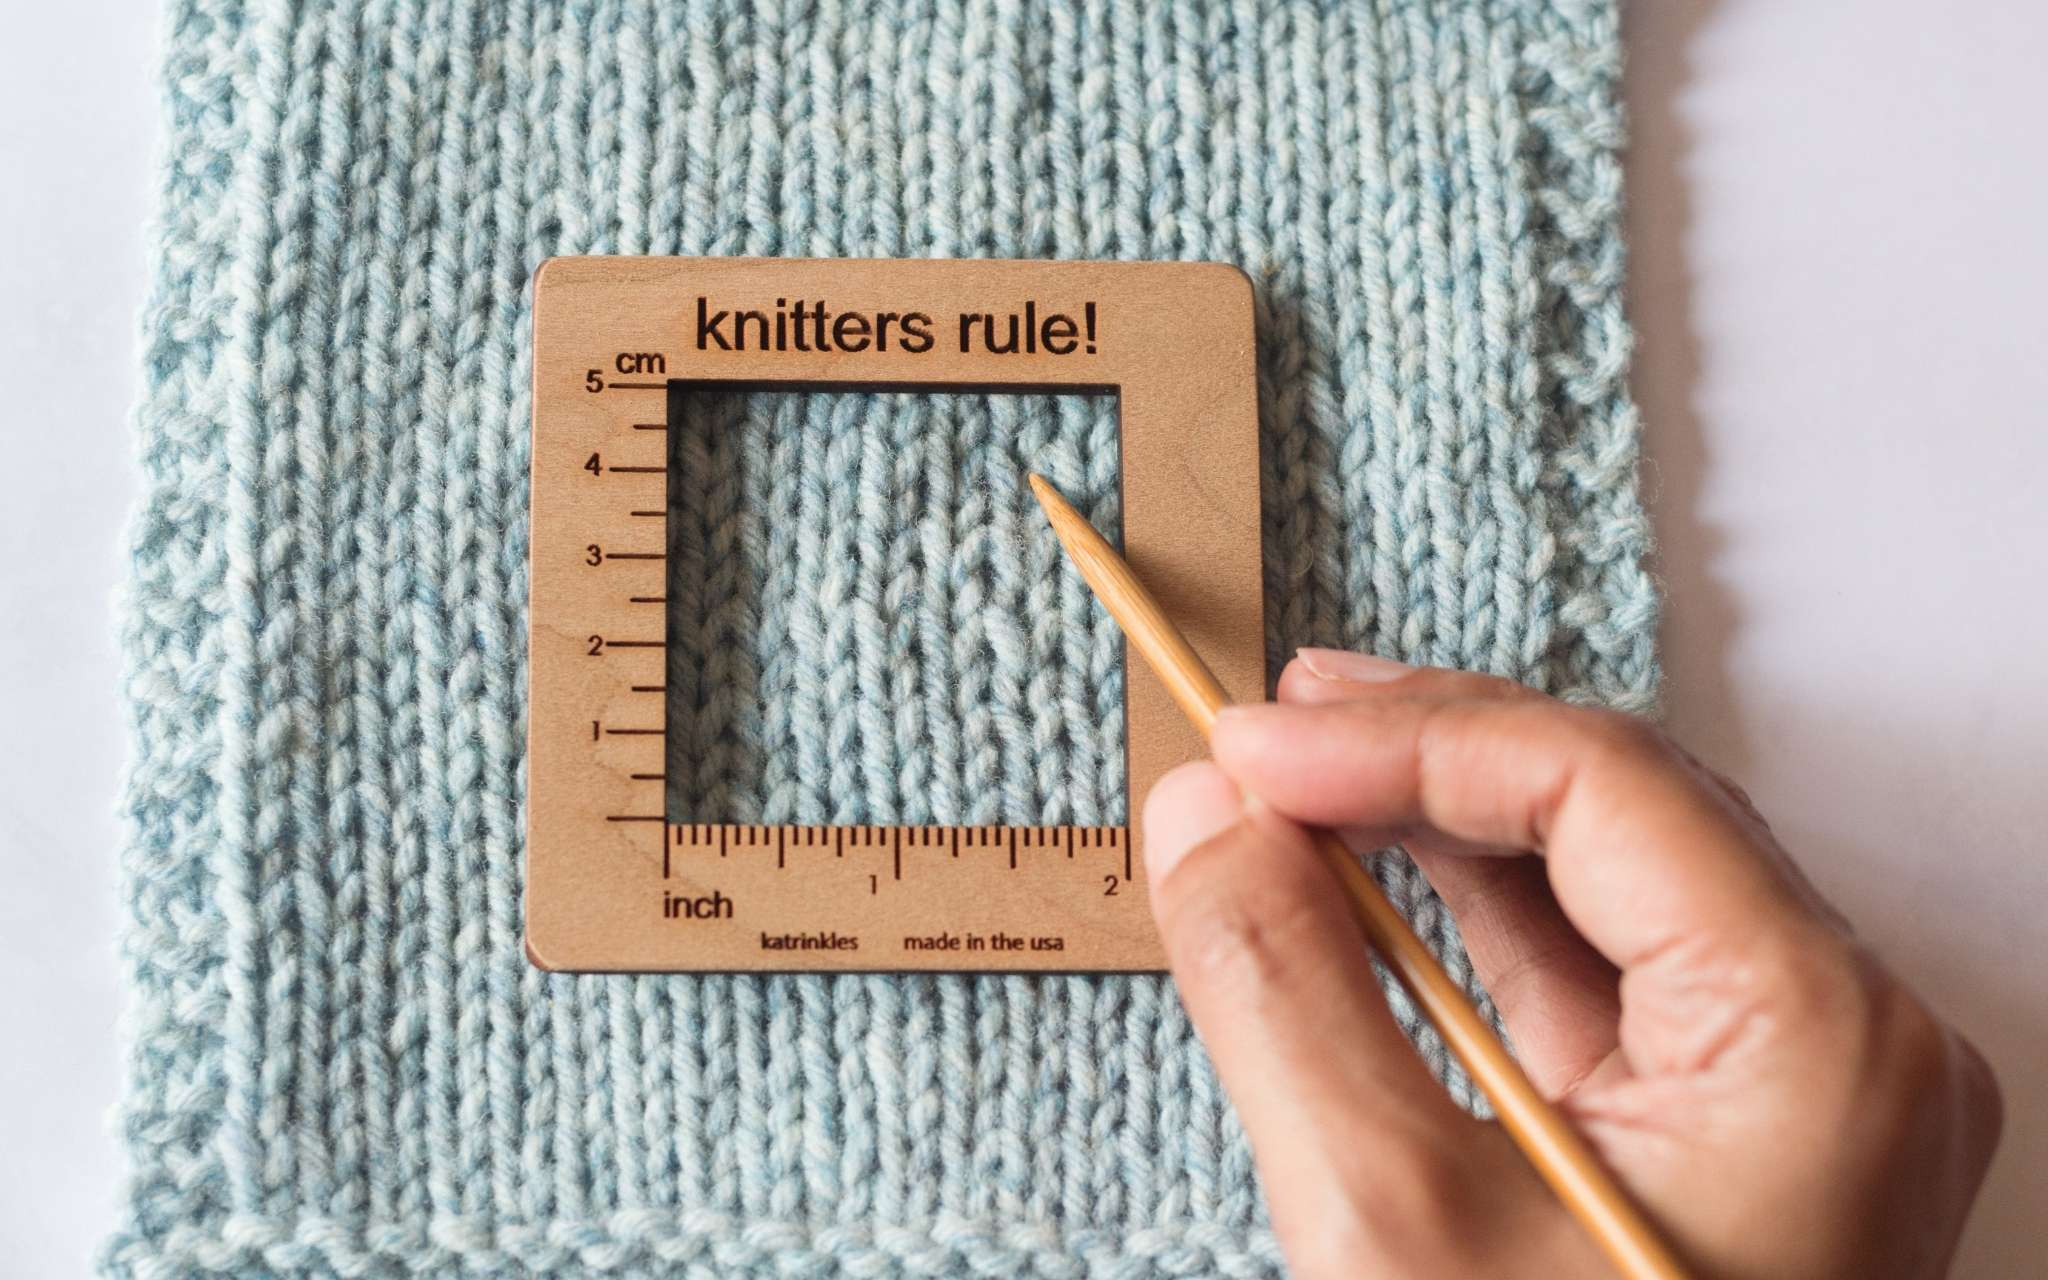 A pale blue swatch lays on a flat surface. A small square wooden measuring tools lies on top of the swatch and a wooden needle is being pointed towards the stitches in the centre.